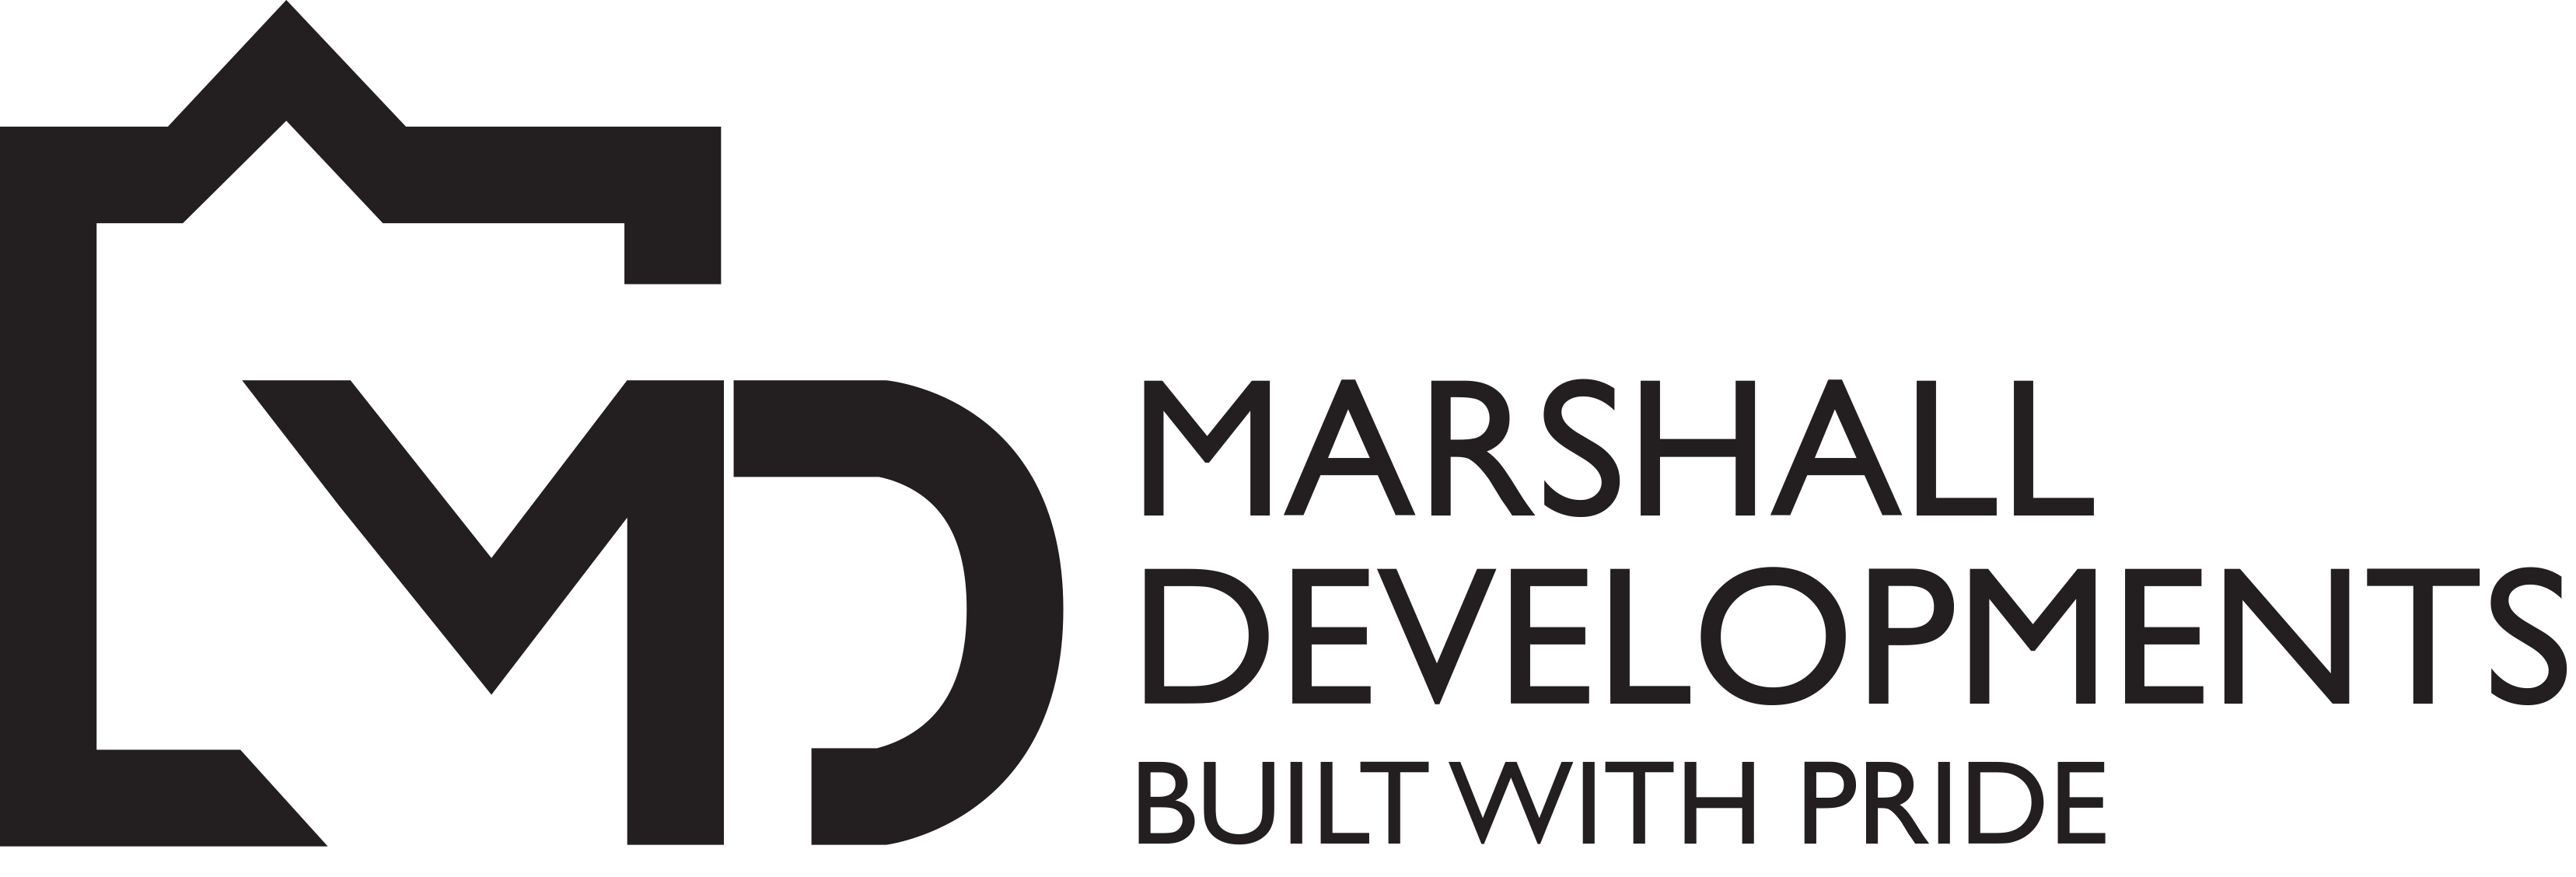 Marshall Developments Sticky Logo Retina